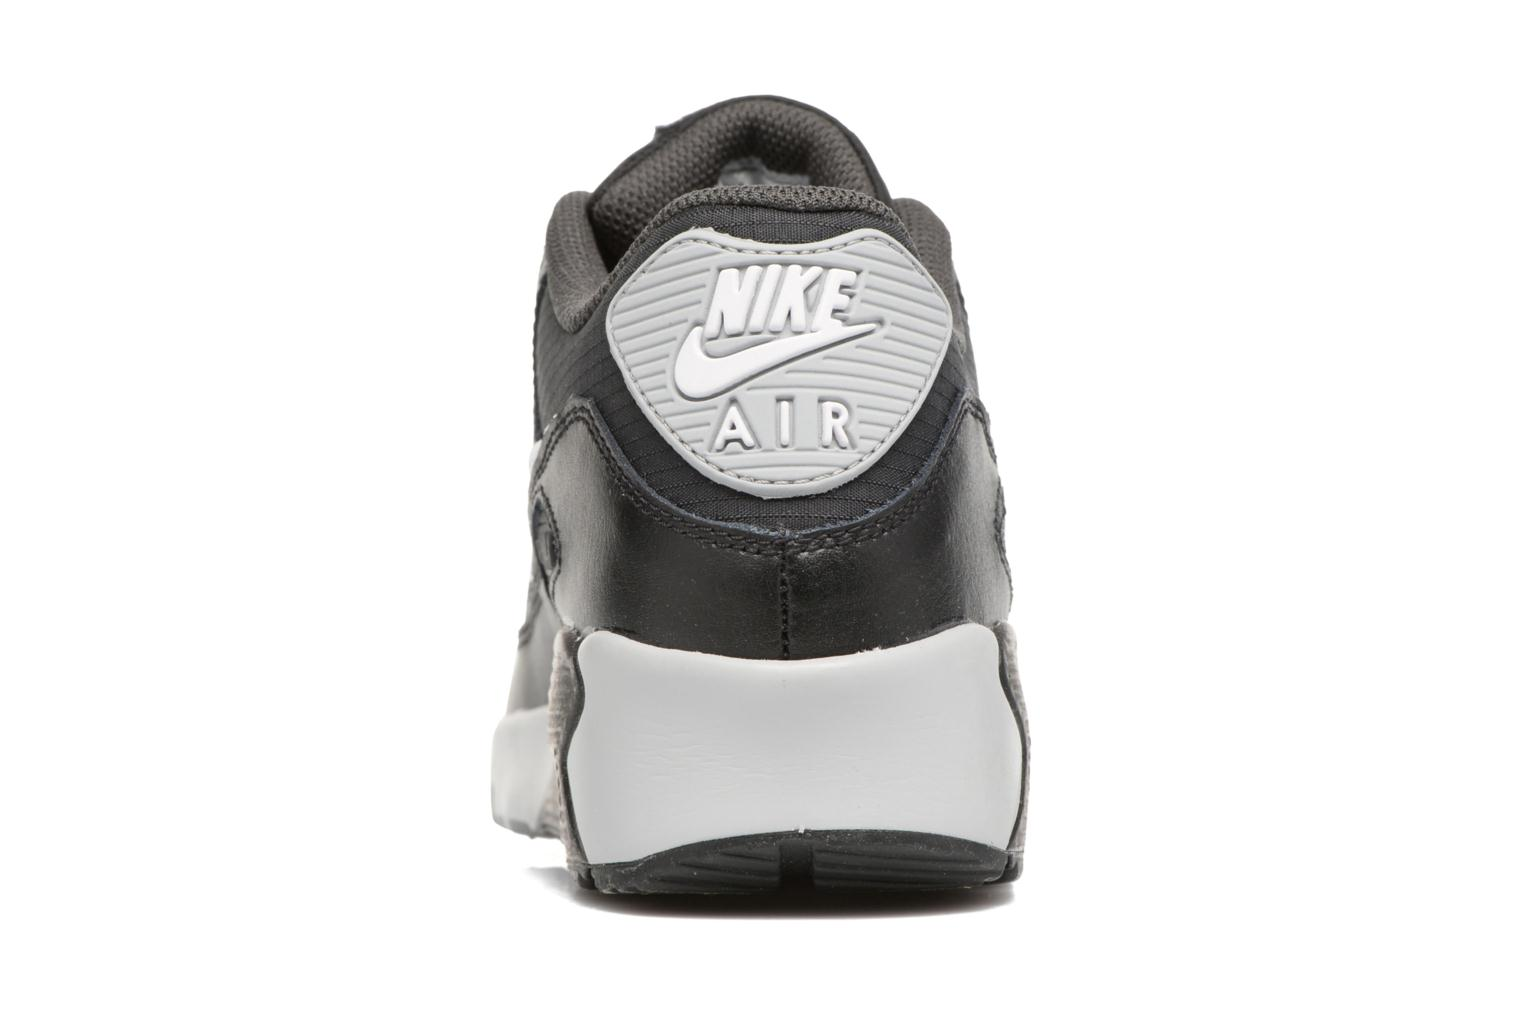 NIKE AIR MAX 90 MESH (GS) Black/White-Anthracite-Wolf Grey